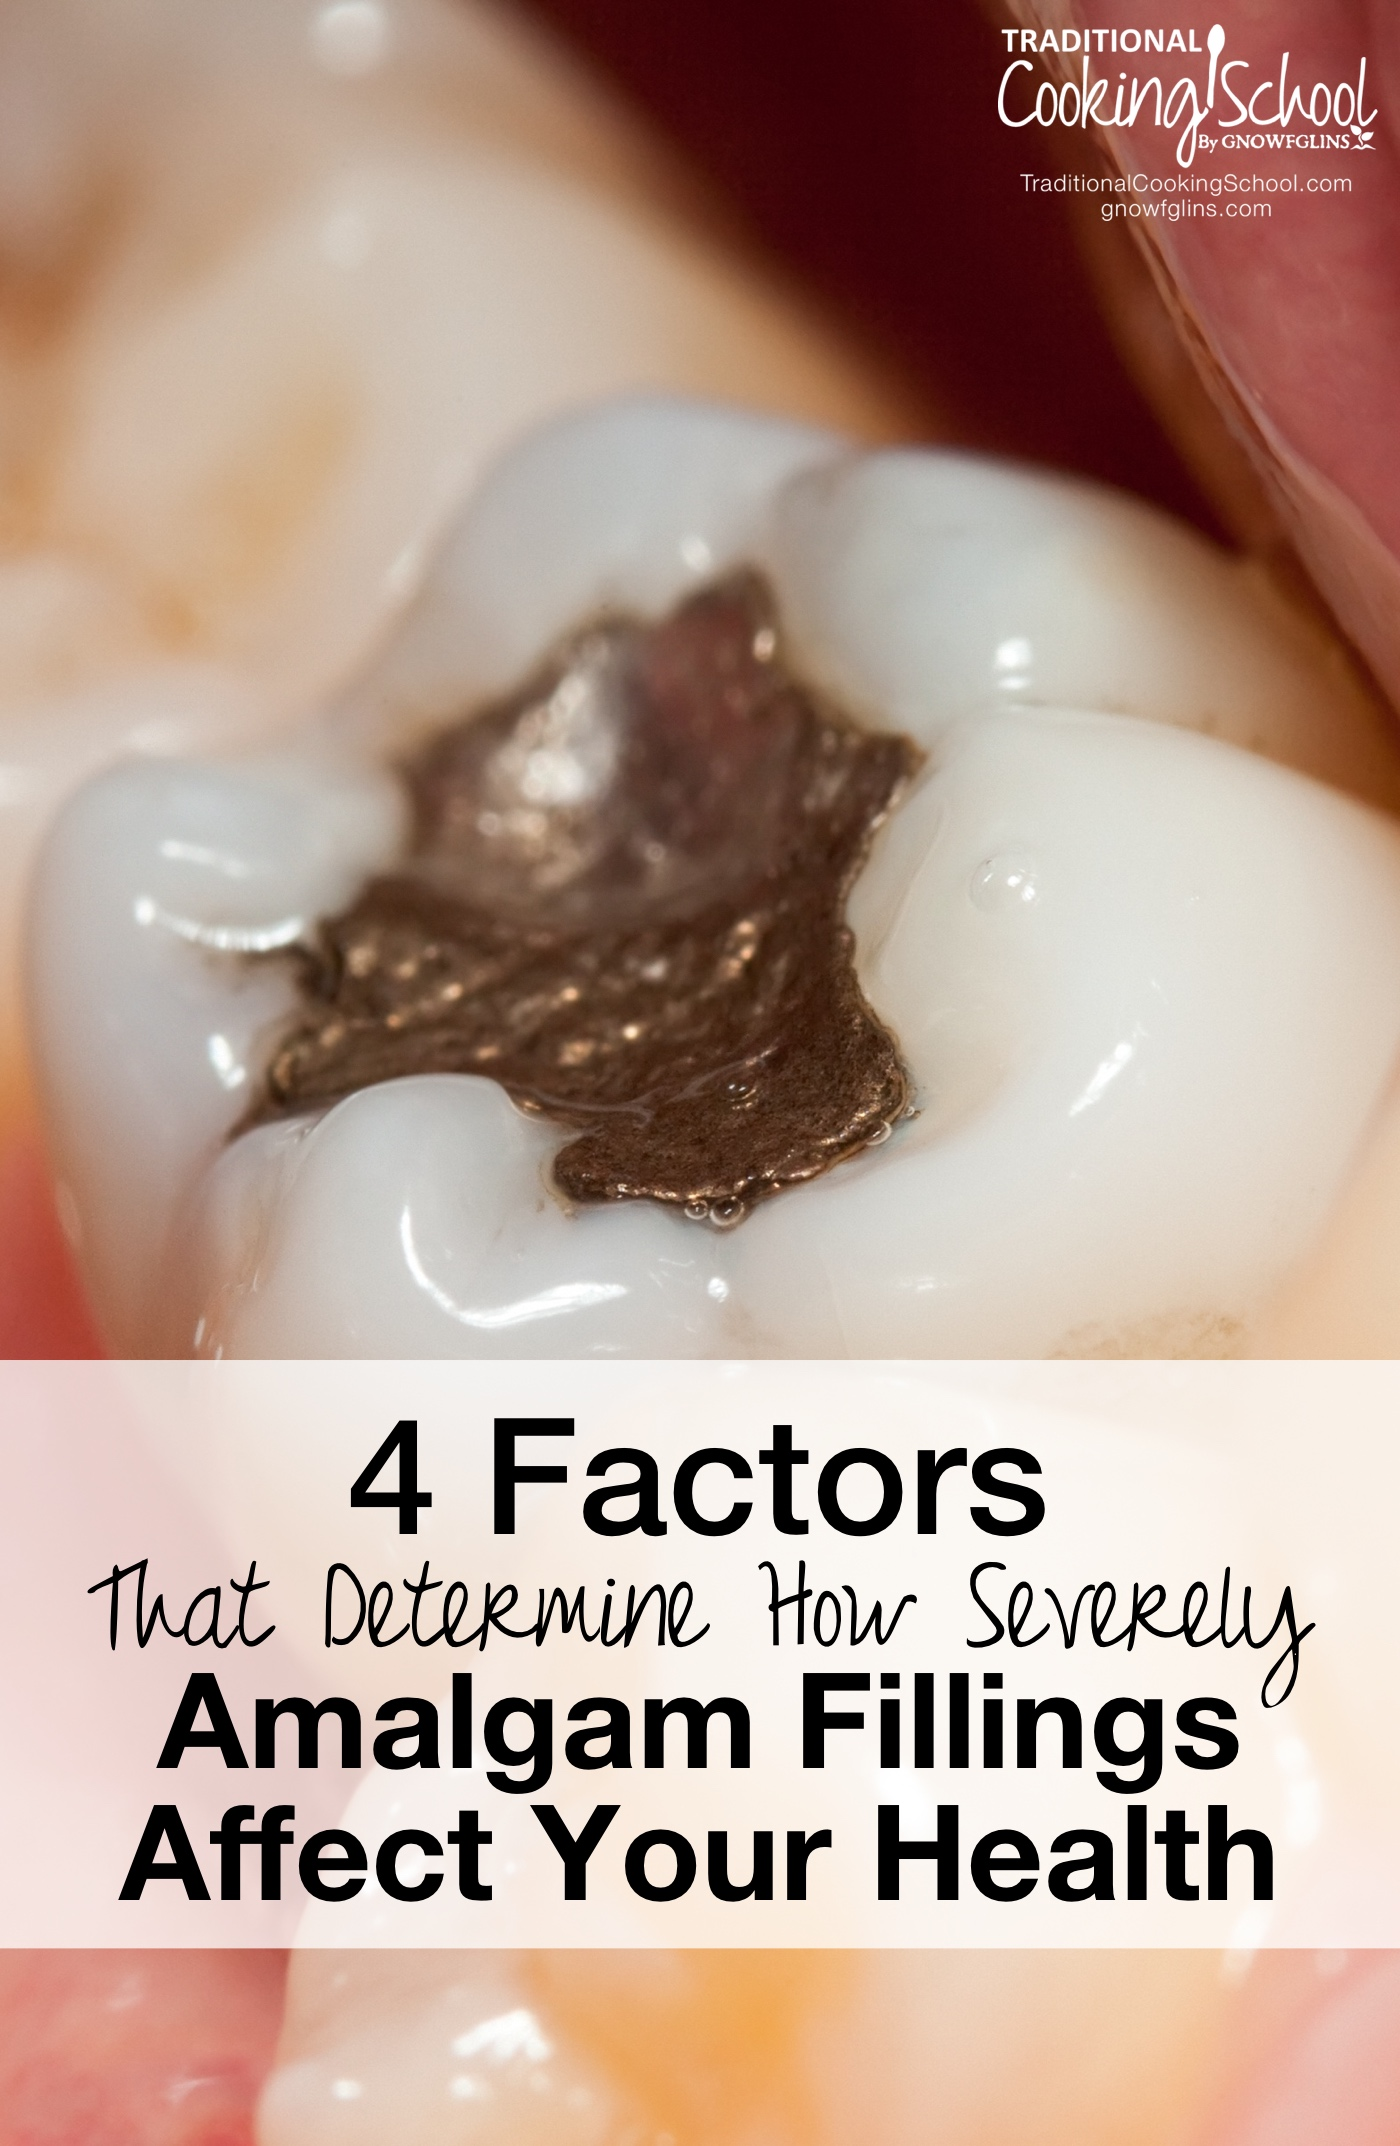 4 Factors That Determine How Severely Amalgam Fillings Affect Your Health | Does long-term, chronic exposure to low doses of mercury vapor pose any risks? What might the health effects be? And, are there any subsets of our population who might have greater sensitivity to mercury? These are the questions we will answer in this continuation of our discussion on mercury amalgam fillings. | TraditionalCookingSchool.com